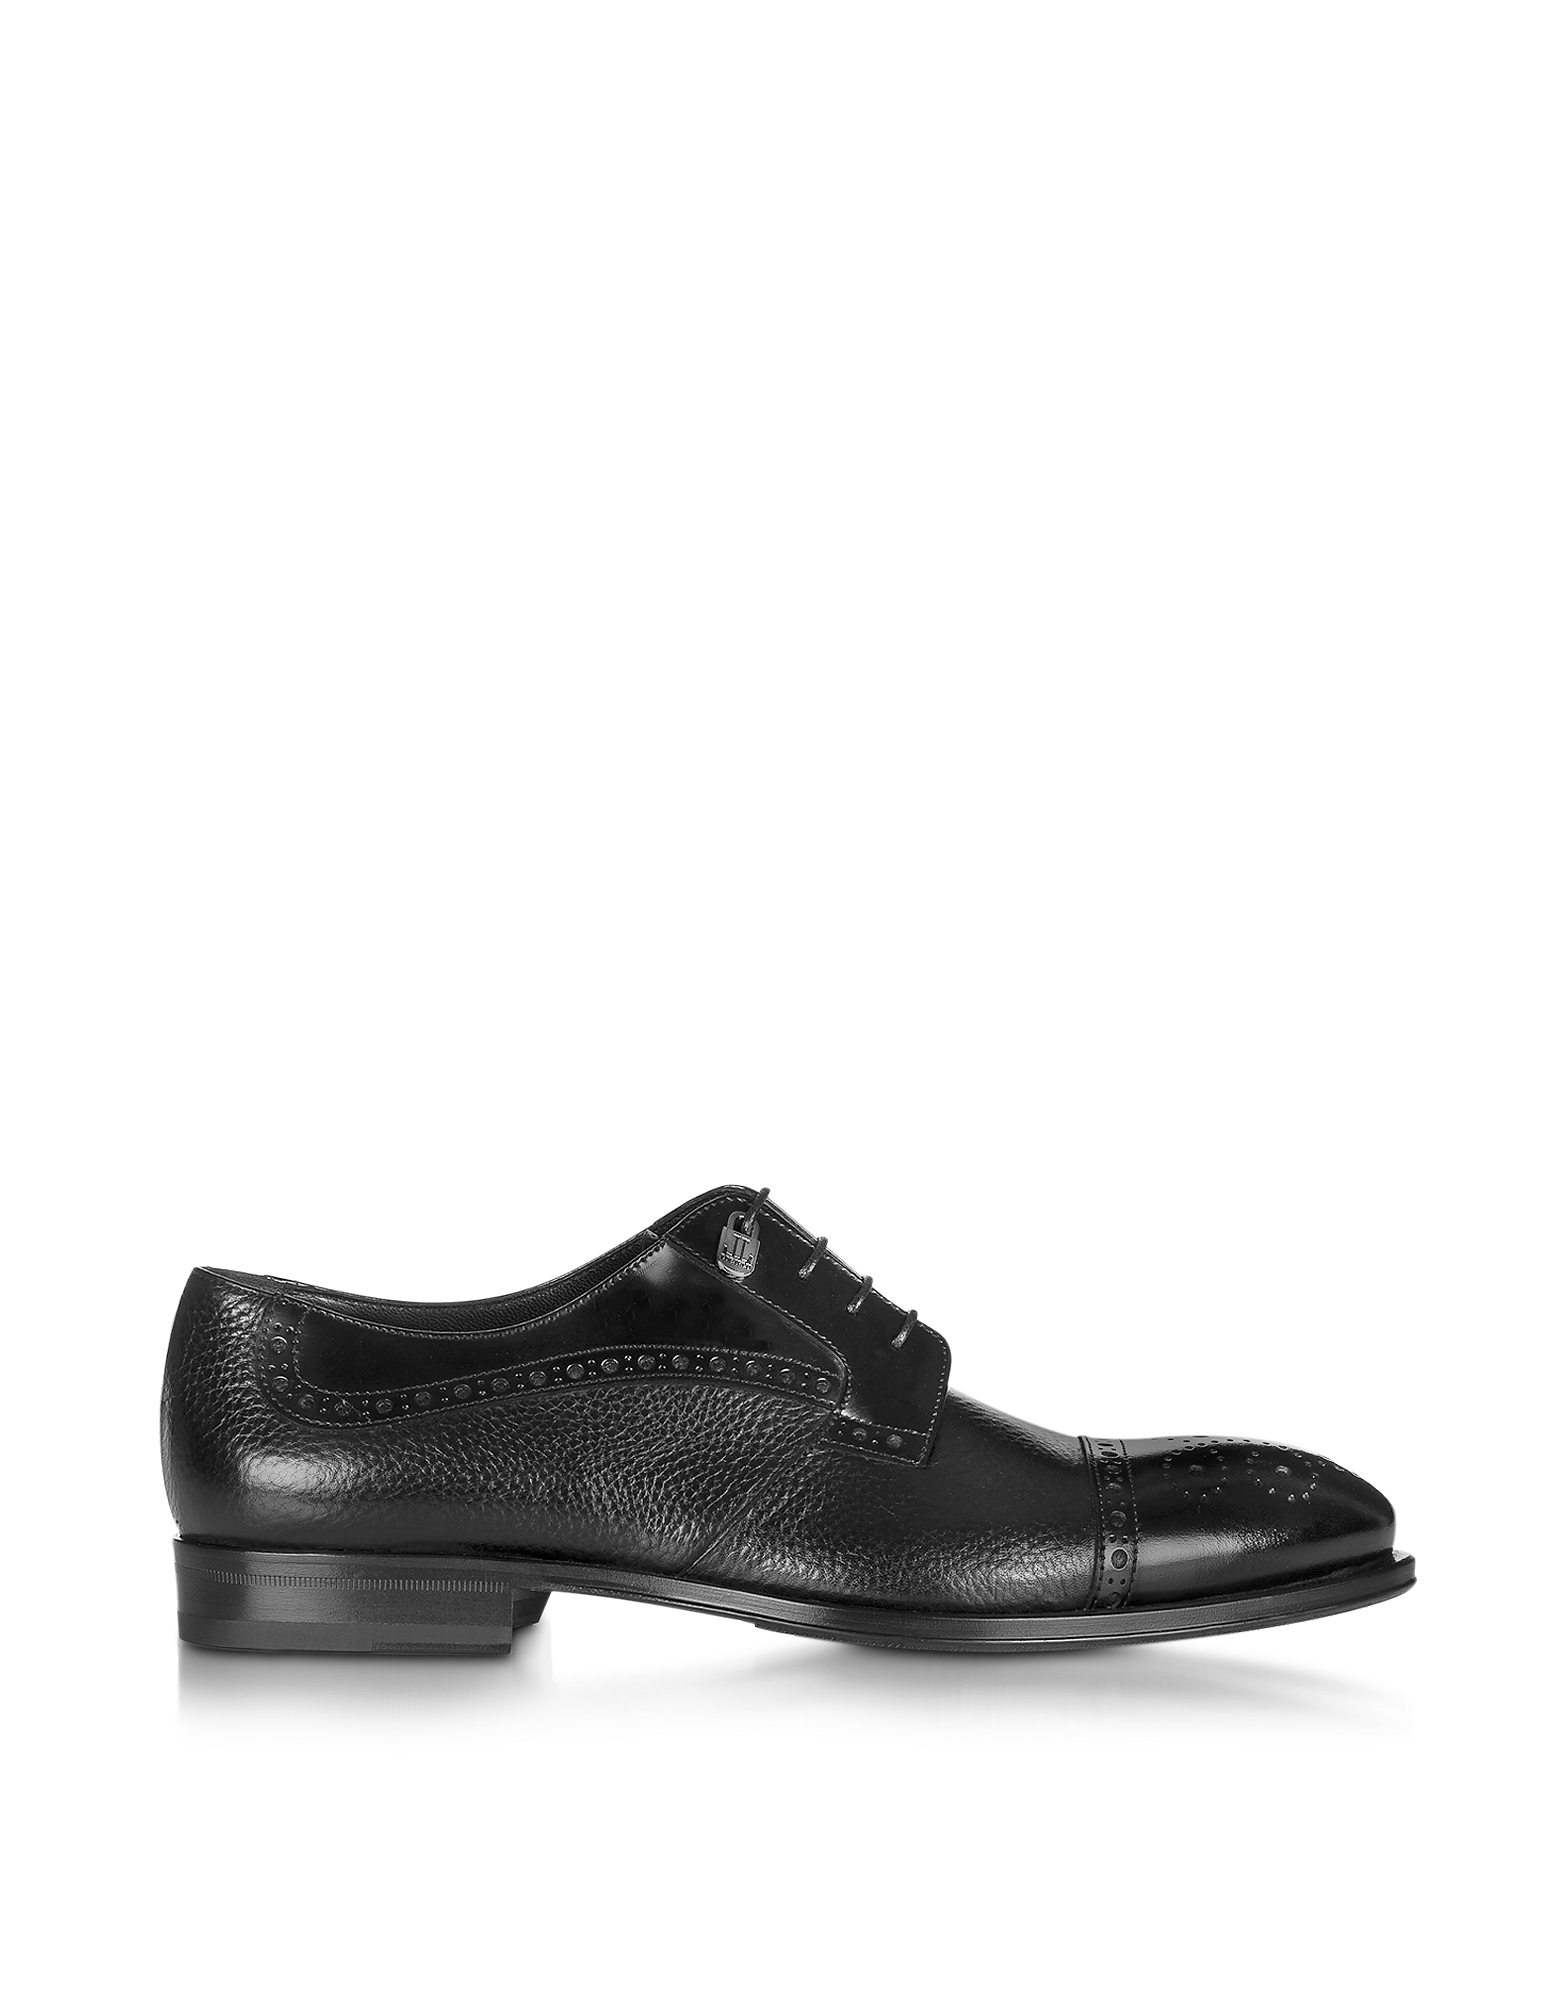 Loriblu Shoes, Black Grained Leather Brogue Shoe